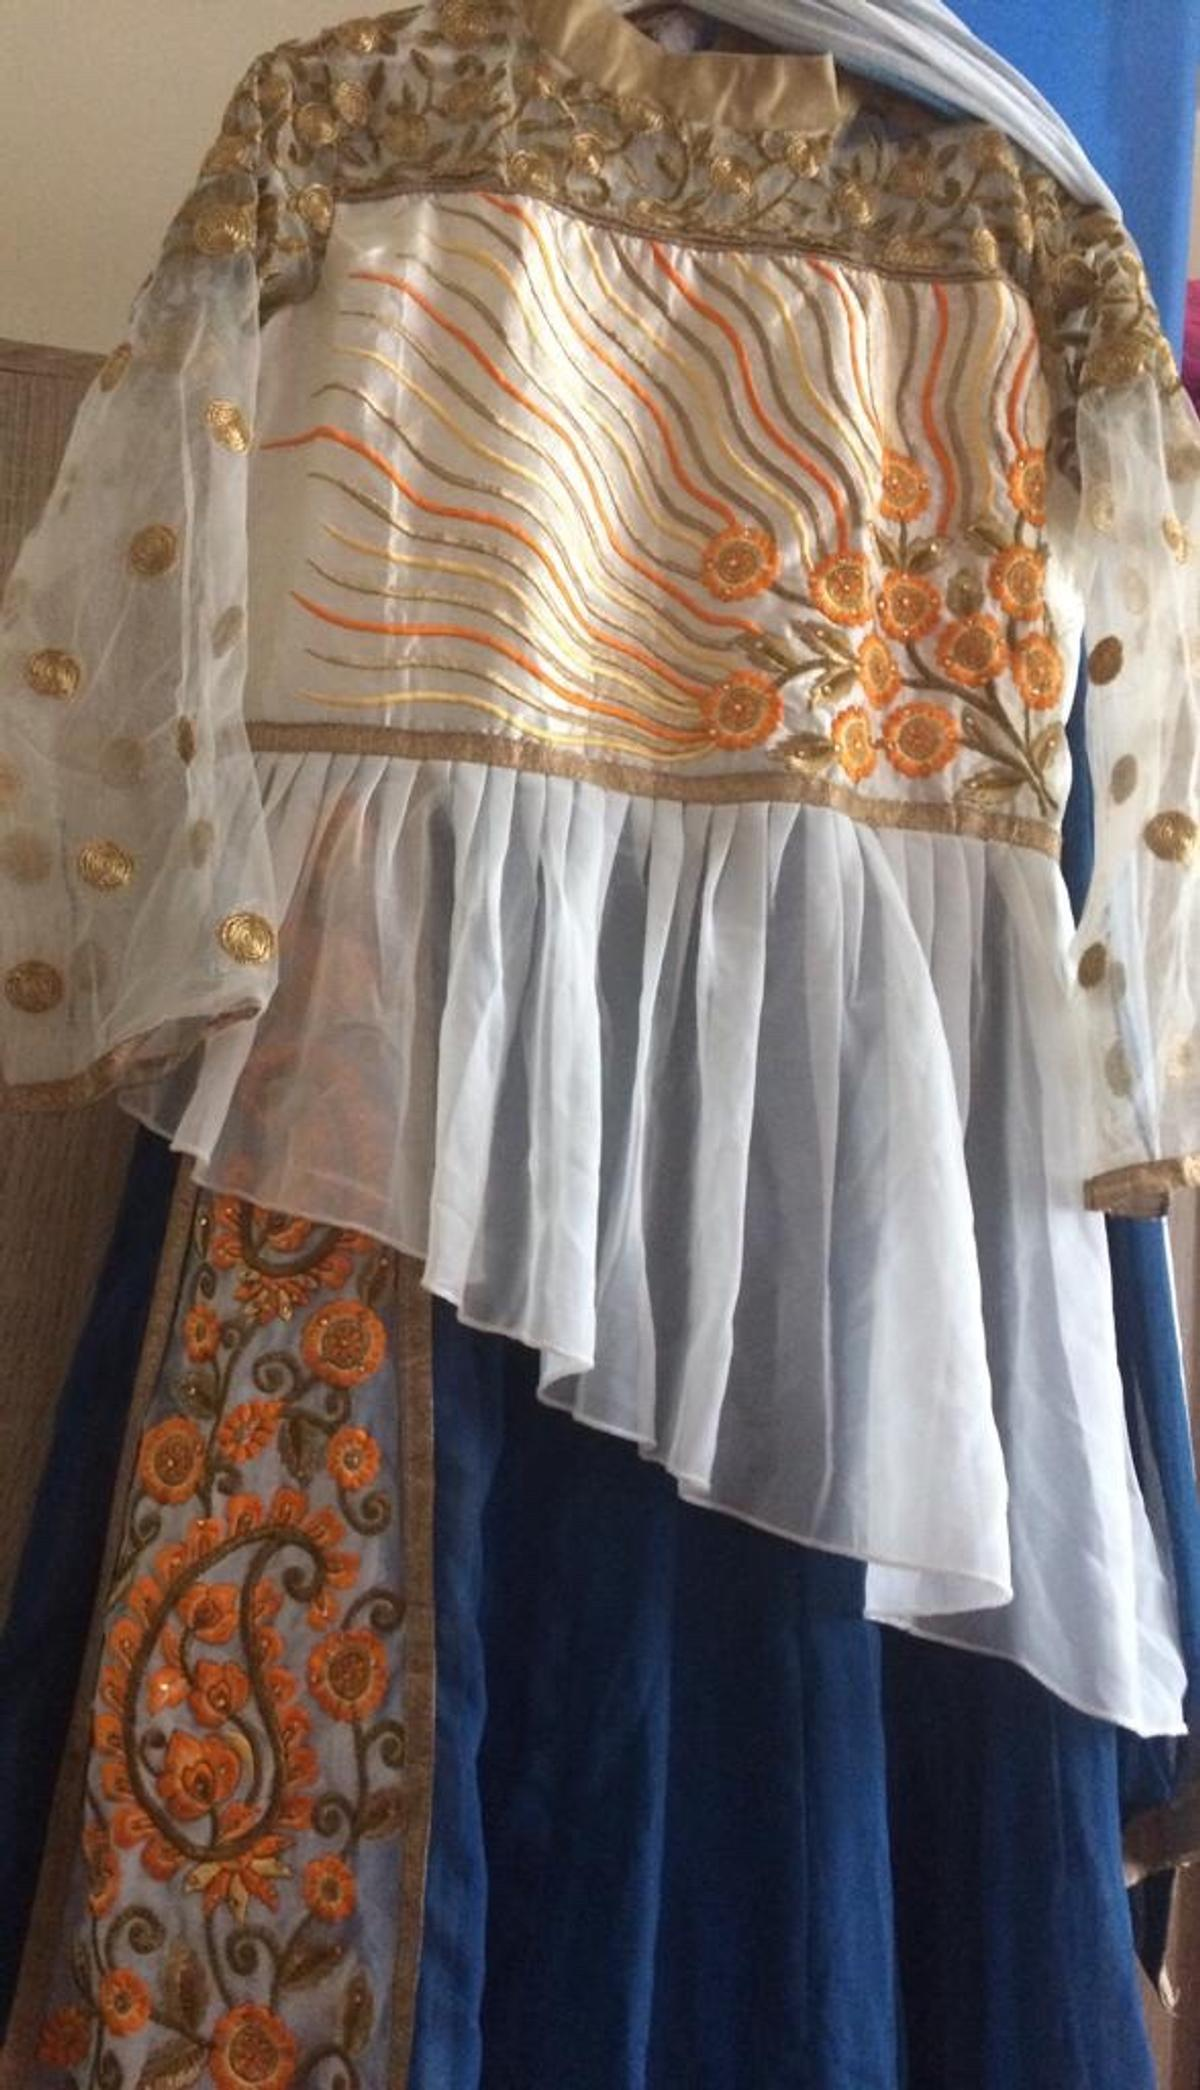 d89d88556 Indian Pakistani designer clothes in WS2 Walsall for £20.00 for sale ...